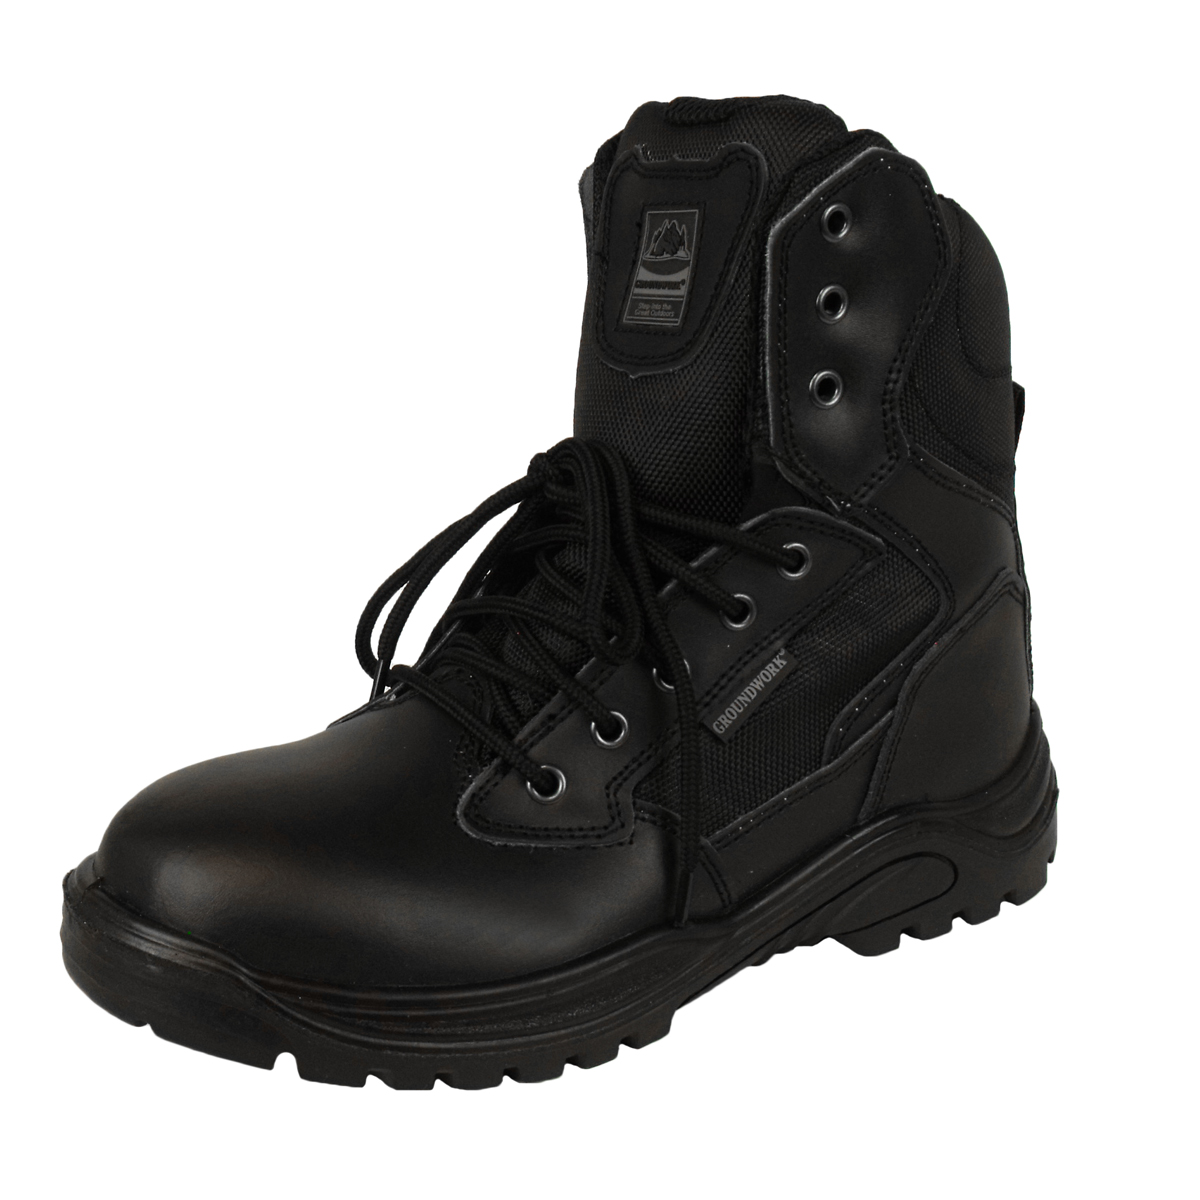 Mens Leather Combat Tactical Safety Ankle Boots Security